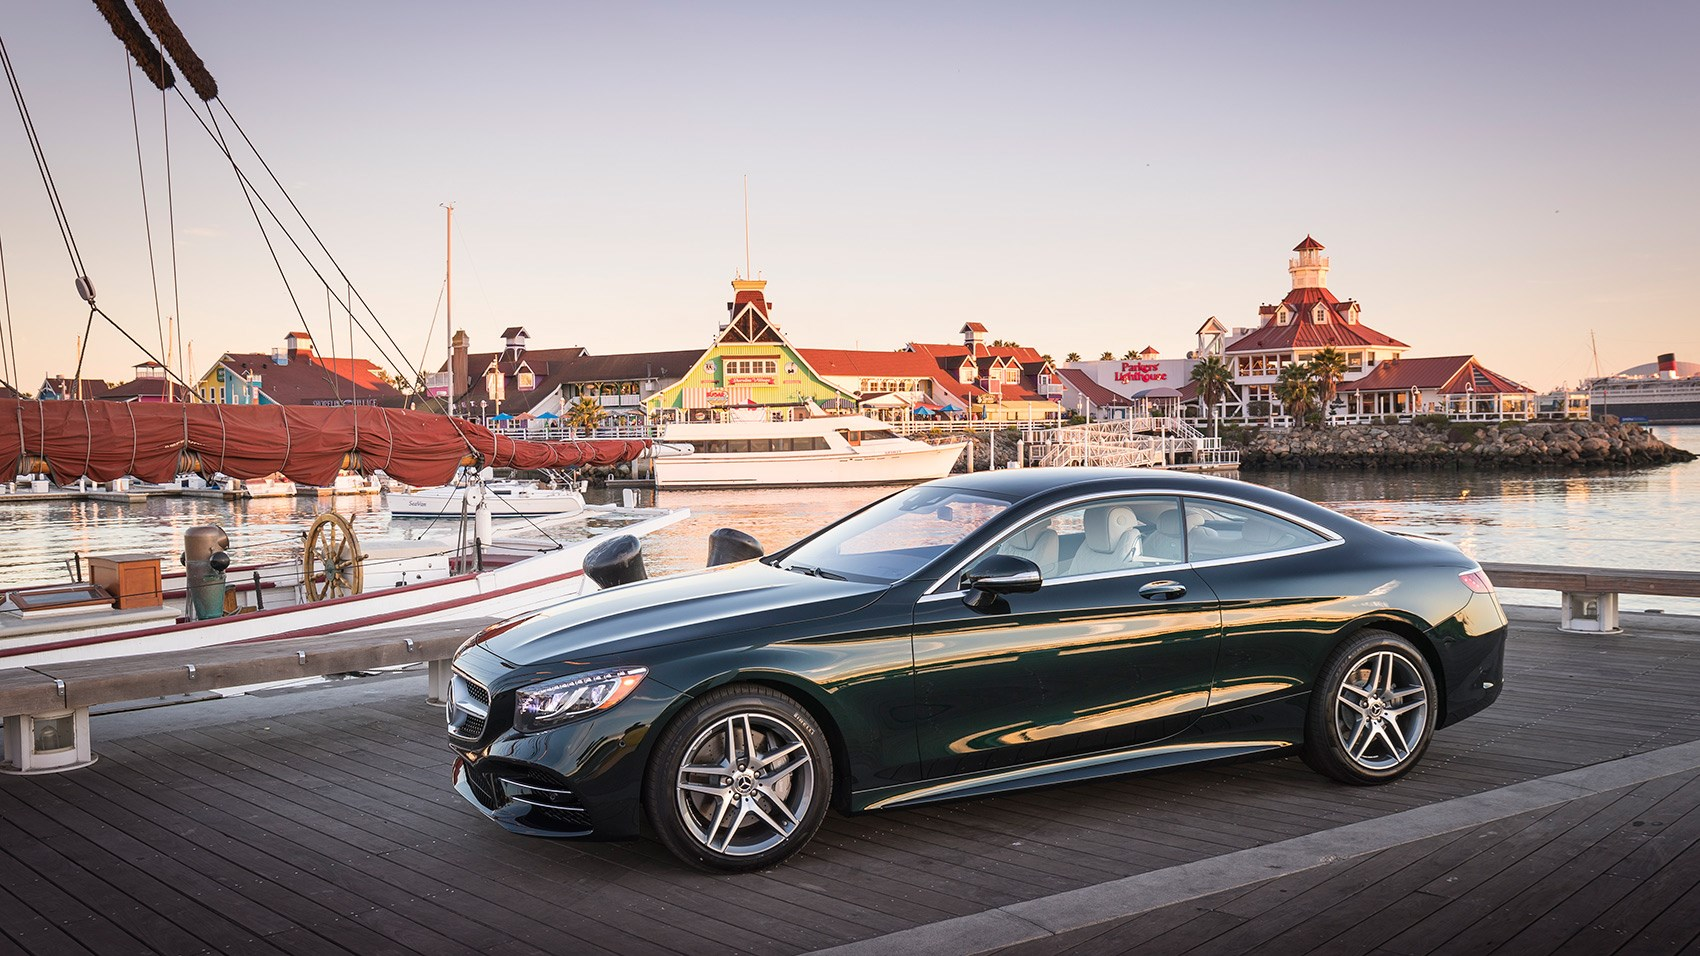 https://www.carmagazine.co.uk/Images/PageFiles/78657/Merc_S-class_Coupe_03.jpg